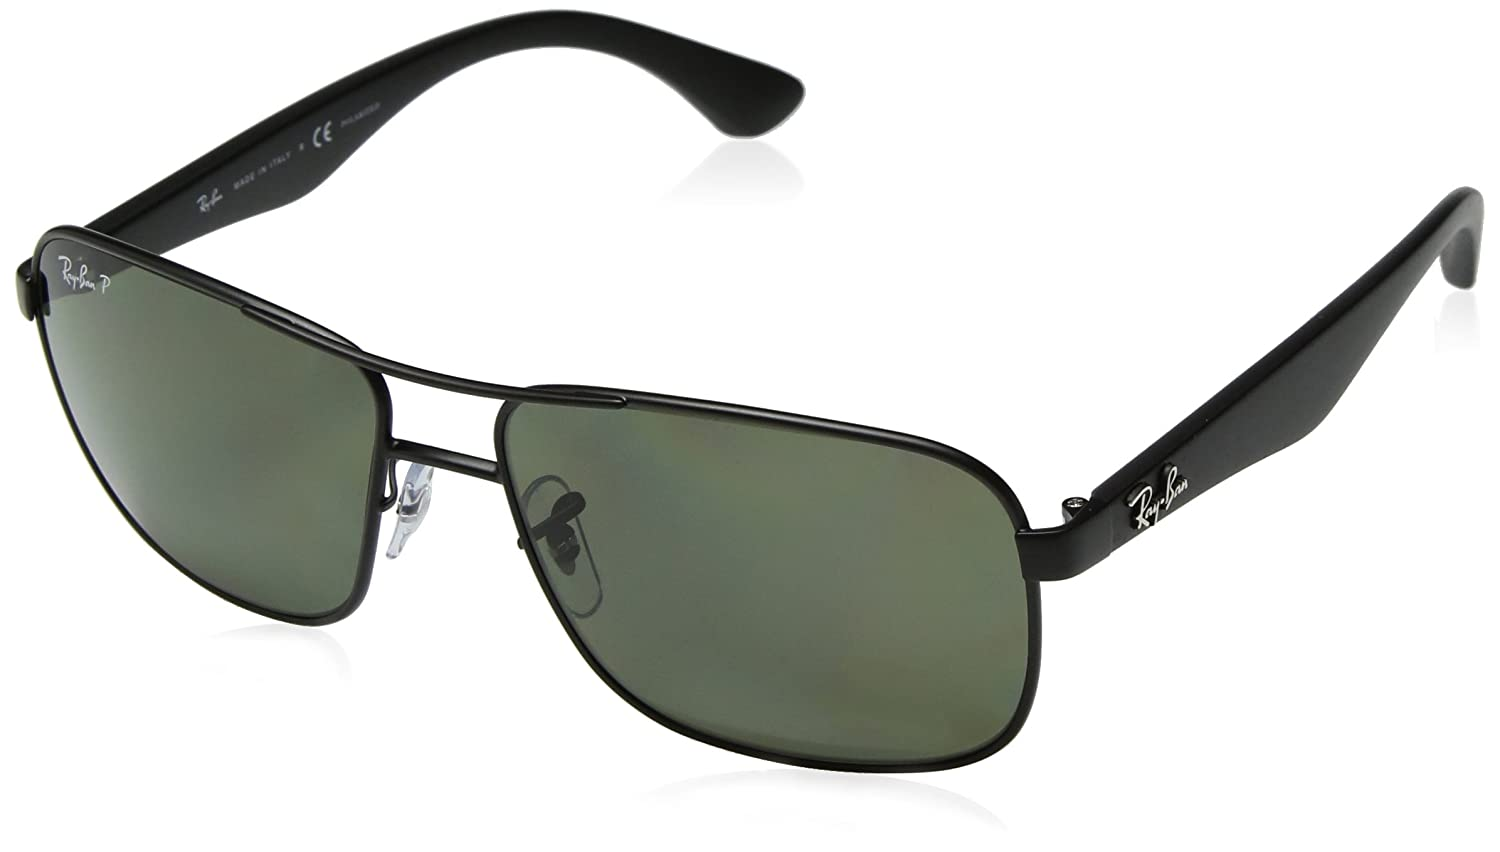 Amazon.com  Ray-Ban Polarized RB3516 Sunglasses - Matte Black Frame Green  Lens  Ray-Ban  Clothing d776a81f3f